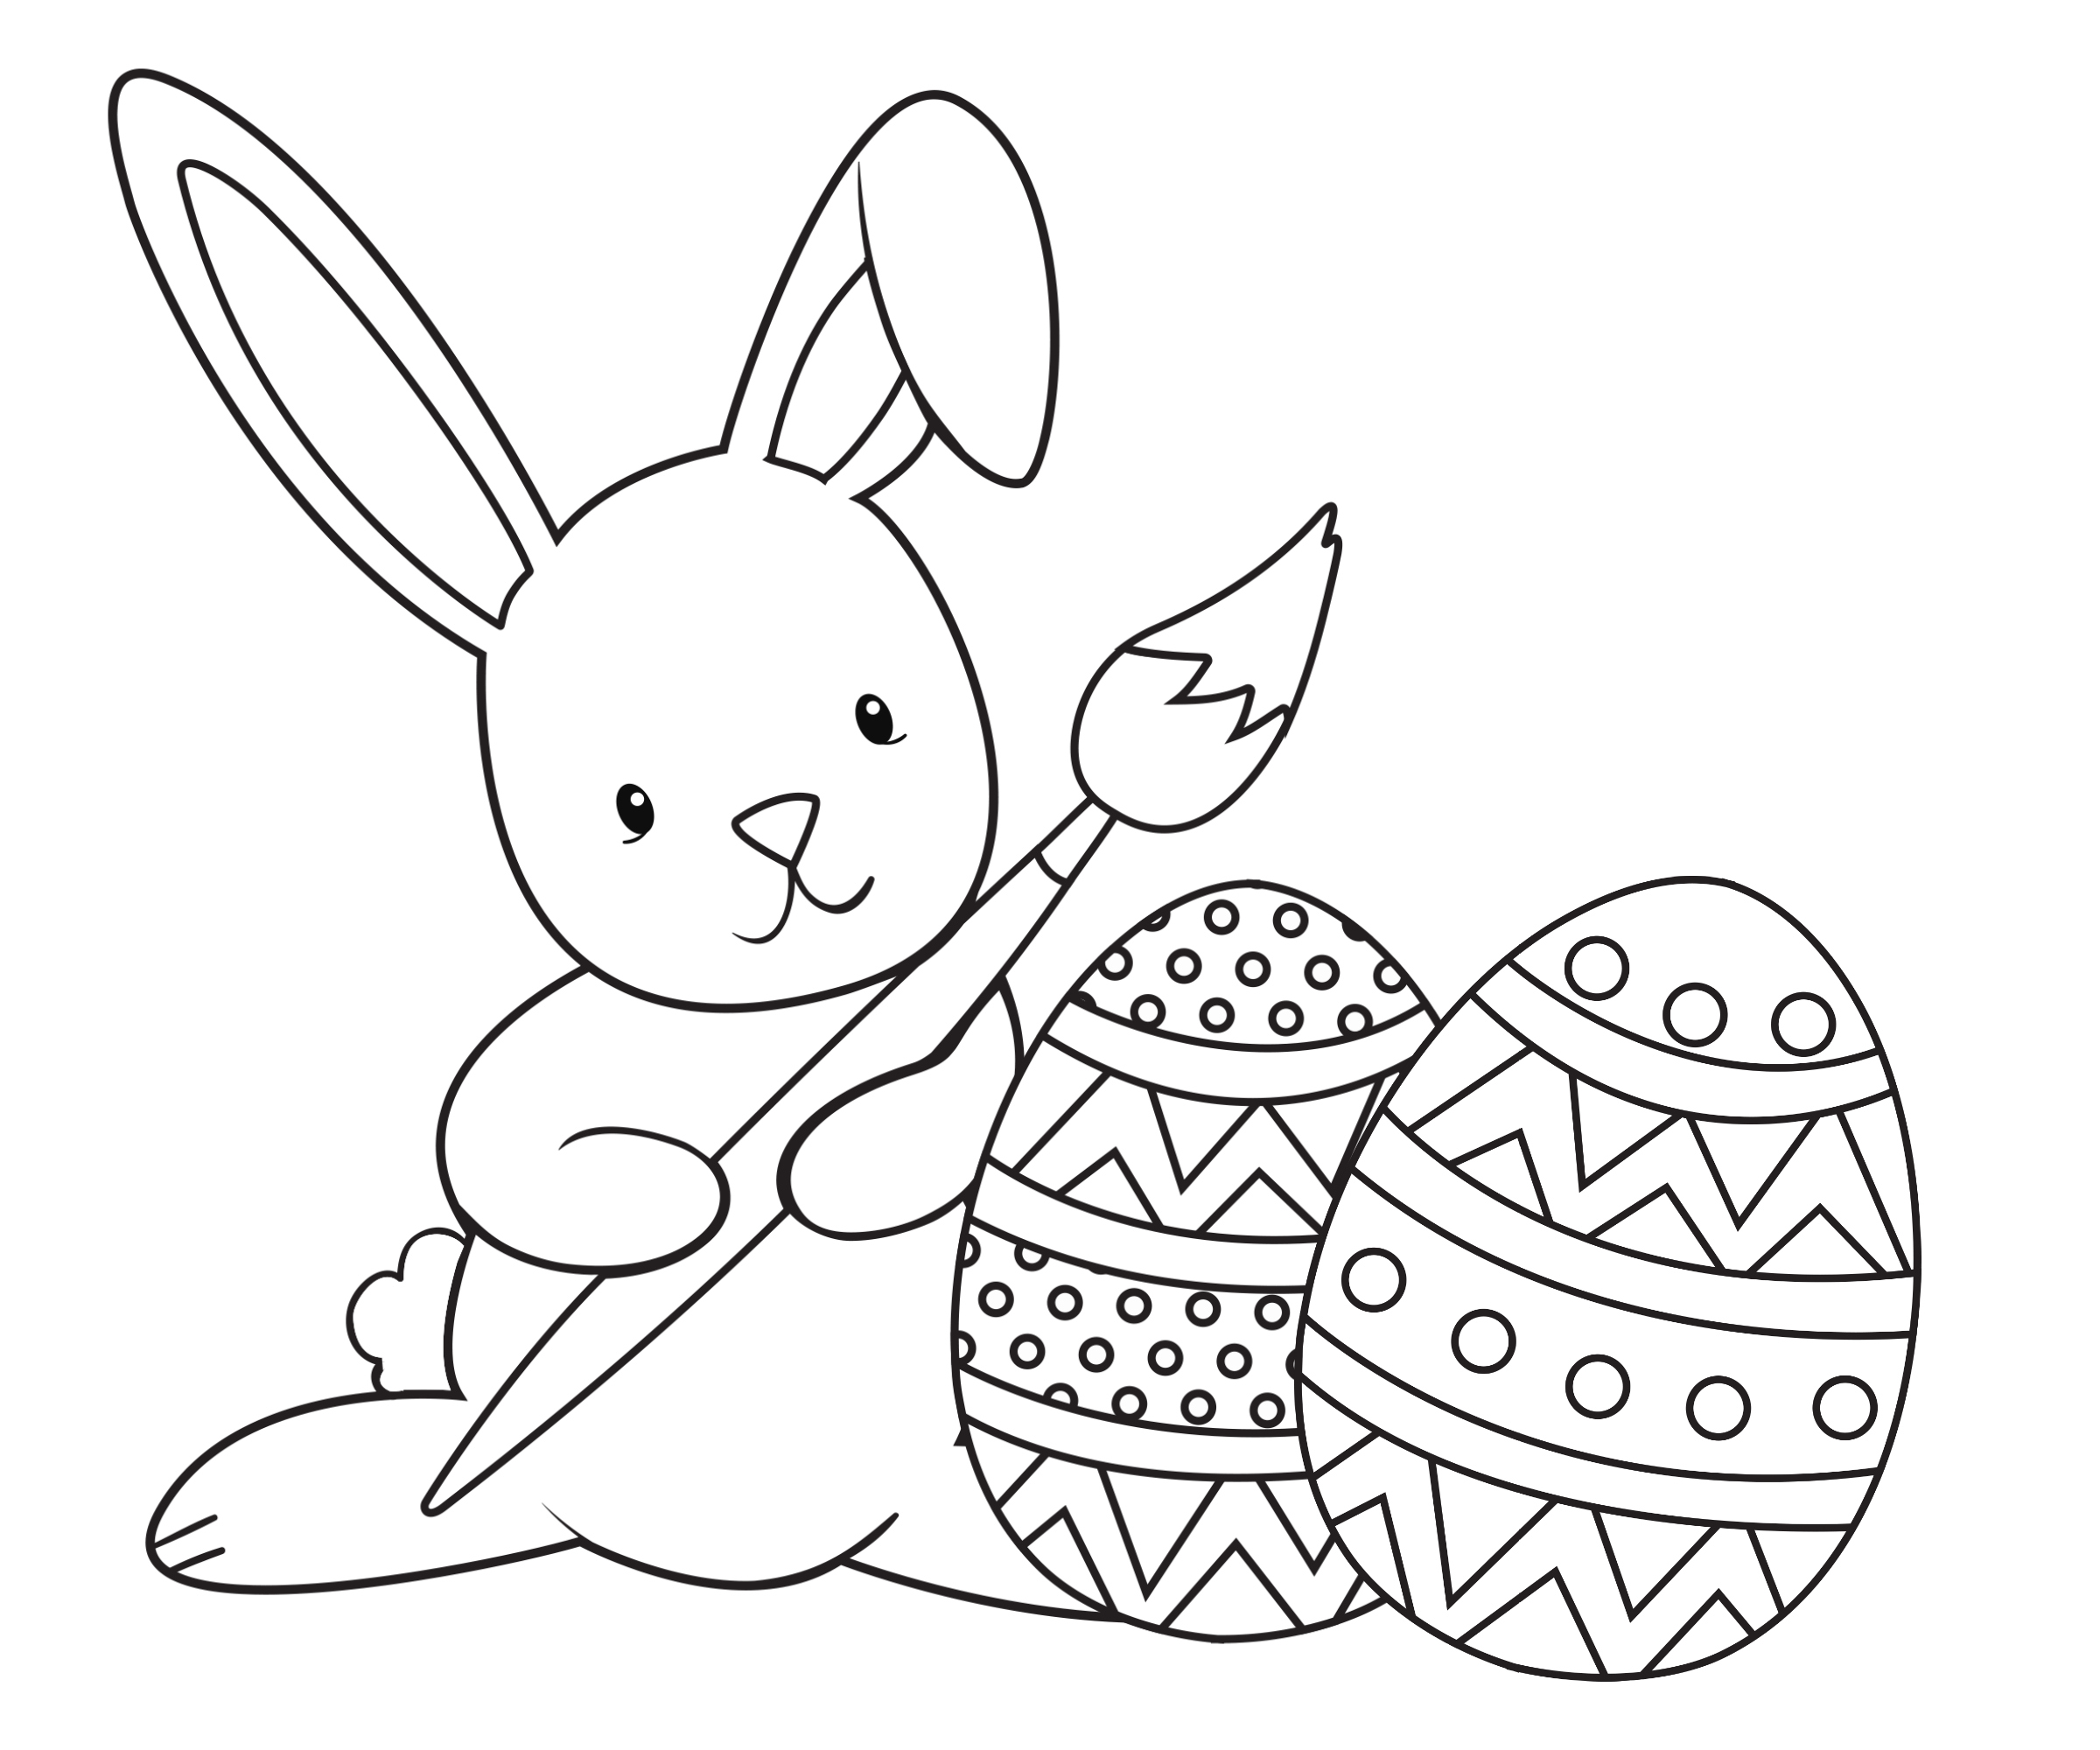 Coloring Easter Pages to Print Printable 14g - Save it to your computer